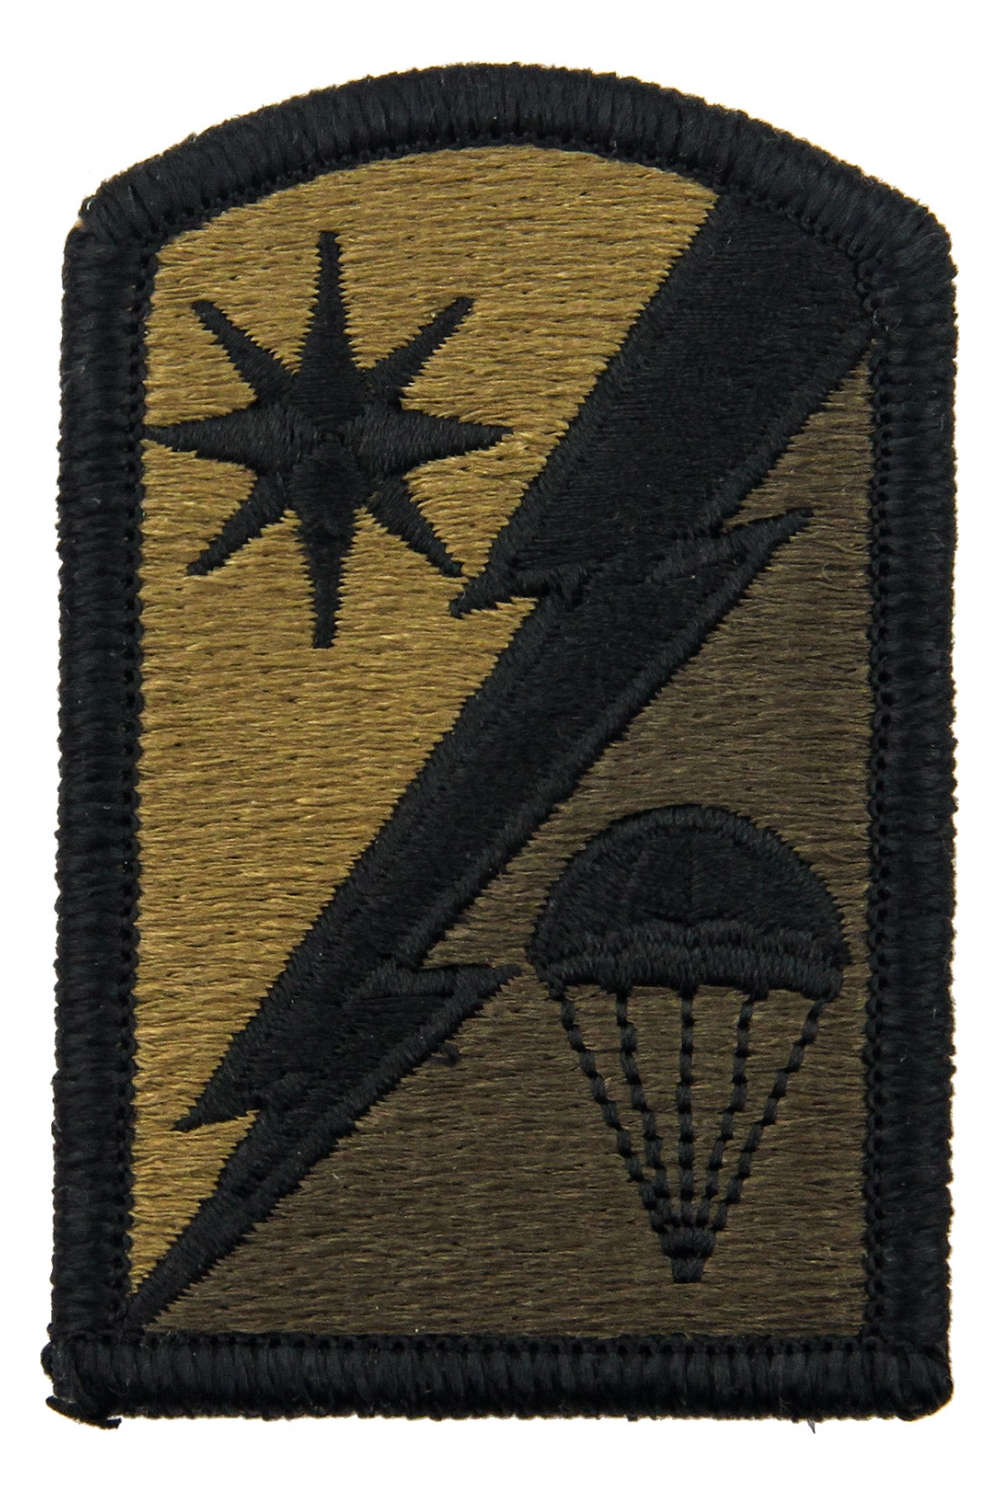 82nd Sustainment Brigade Patch Scorpion//OCP with Hook Fastener